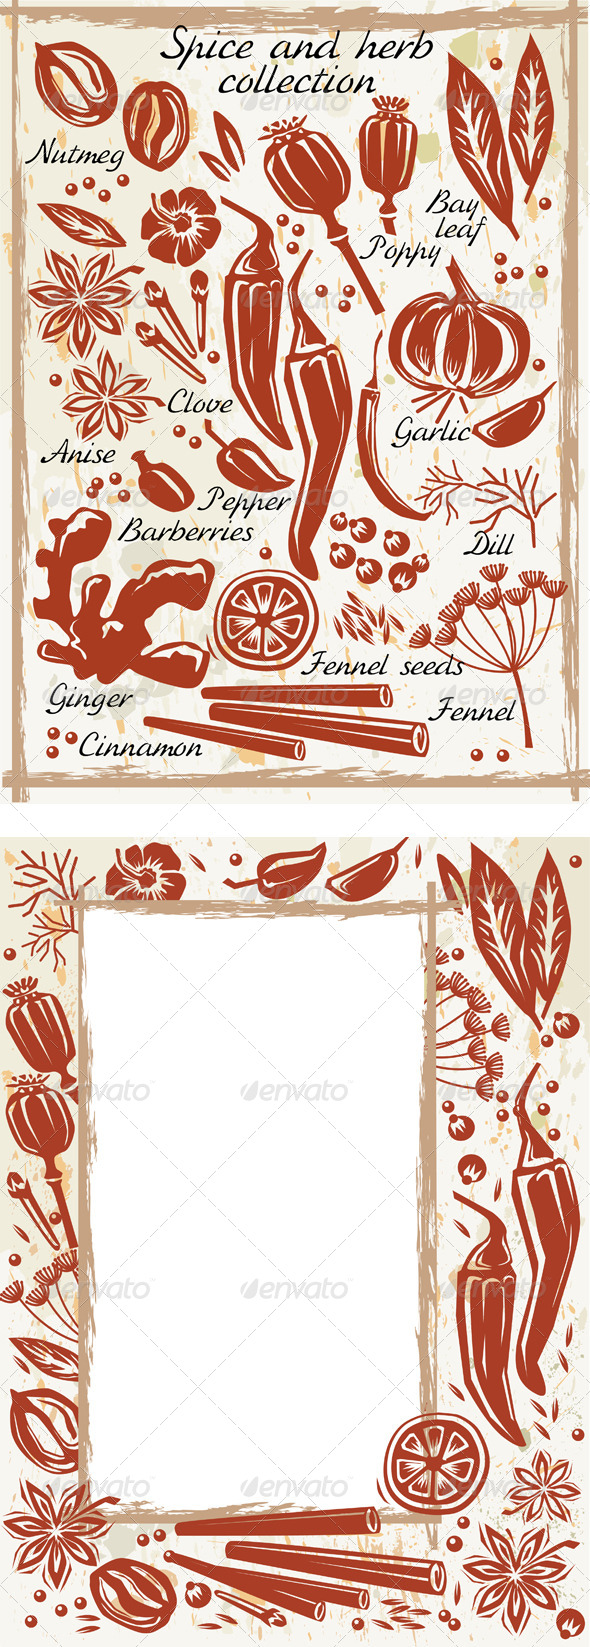 GraphicRiver Spice and Herb Collection 6432267